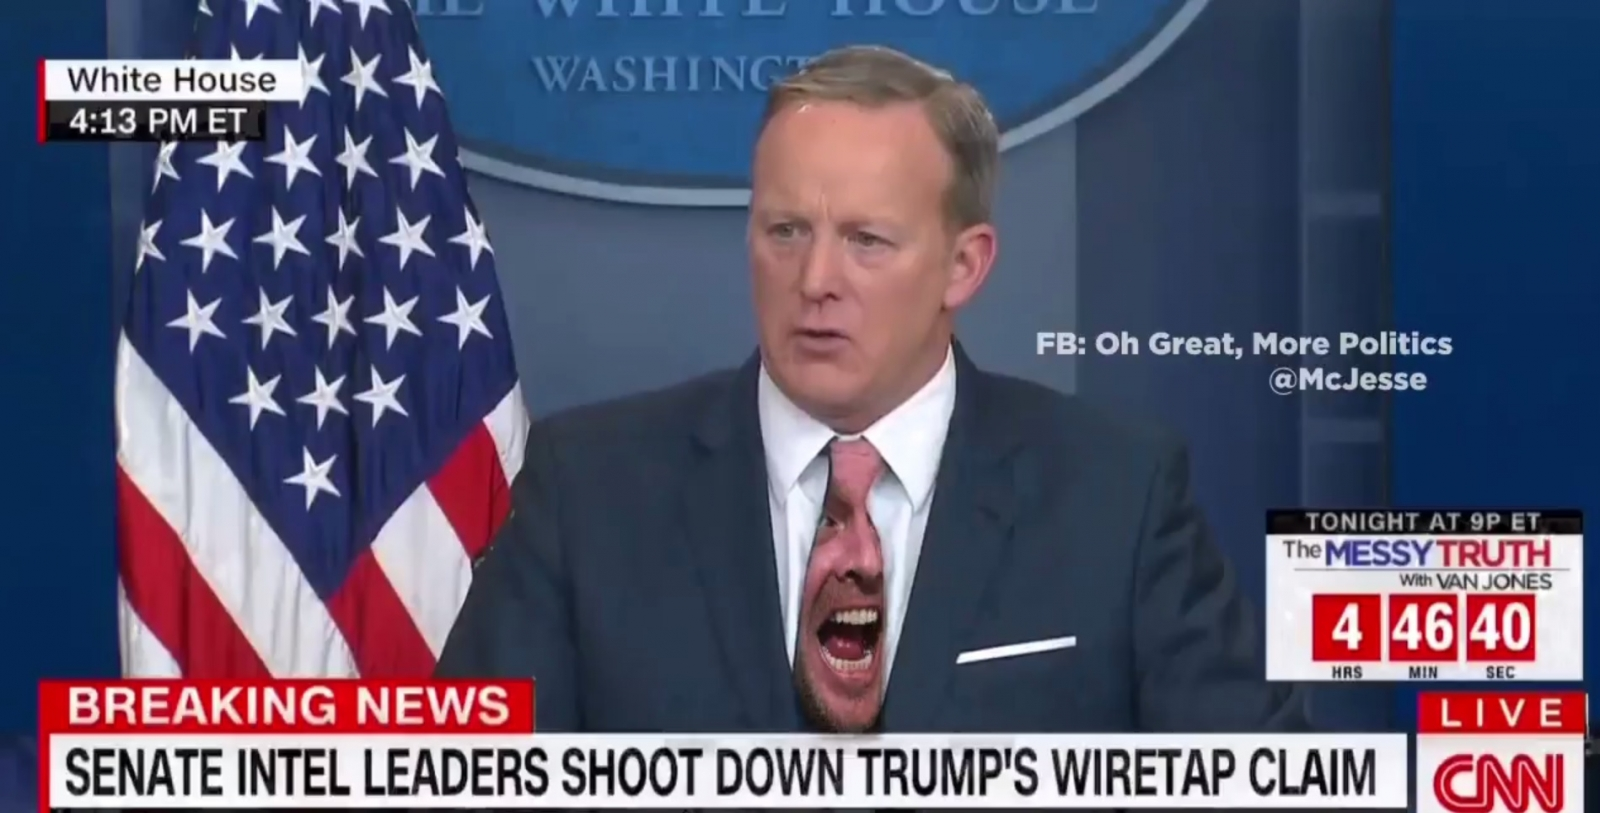 Sean Spicer green screen tie